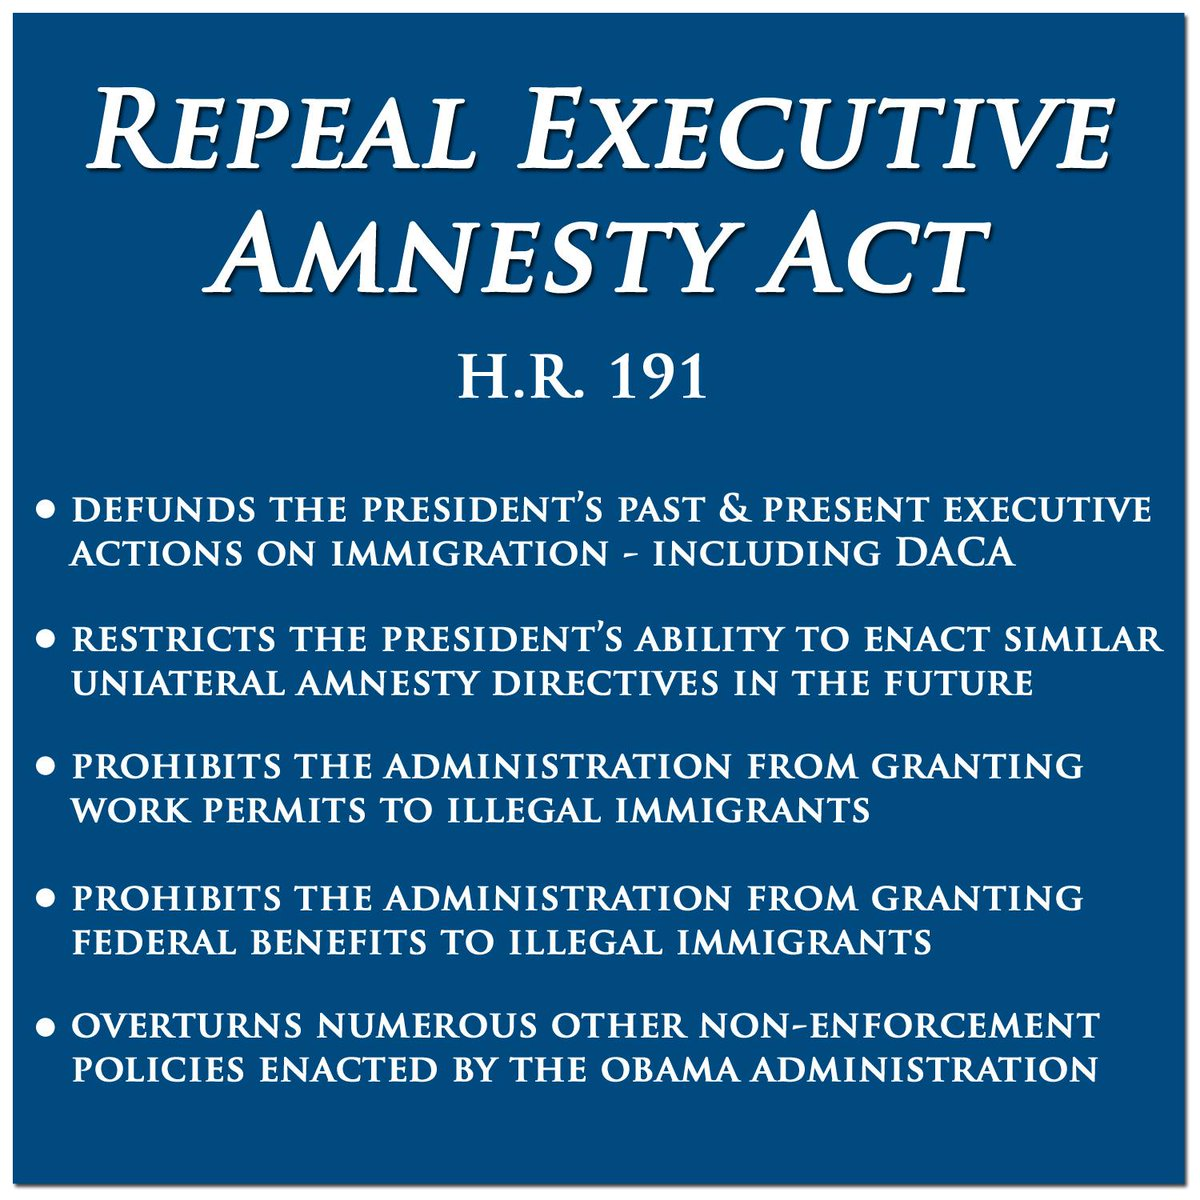 I cosponsored @Robert_Aderholt's bill to stop POTUS's amnesty & am pushing for its inclusion in the DHS approps bill. http://t.co/MdMOgLNW5G